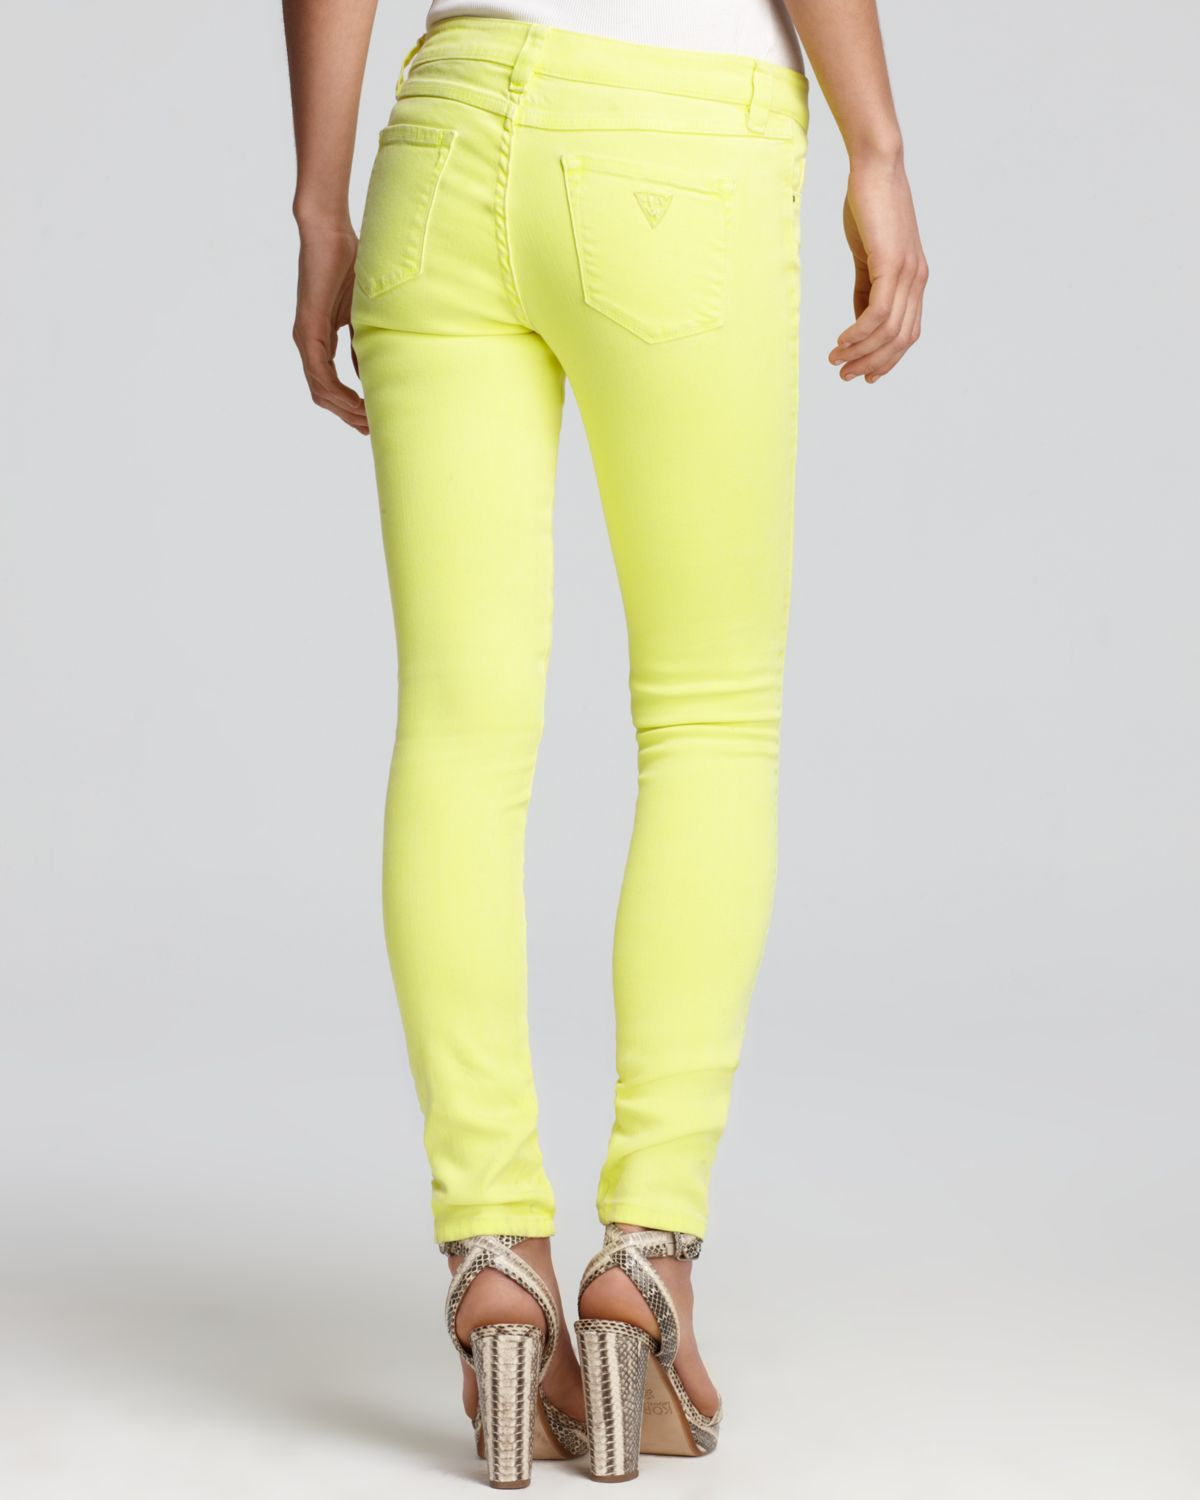 Brittney Ankle Skinny Jeans in Neon Yellow  I live them! Mix and match colors!